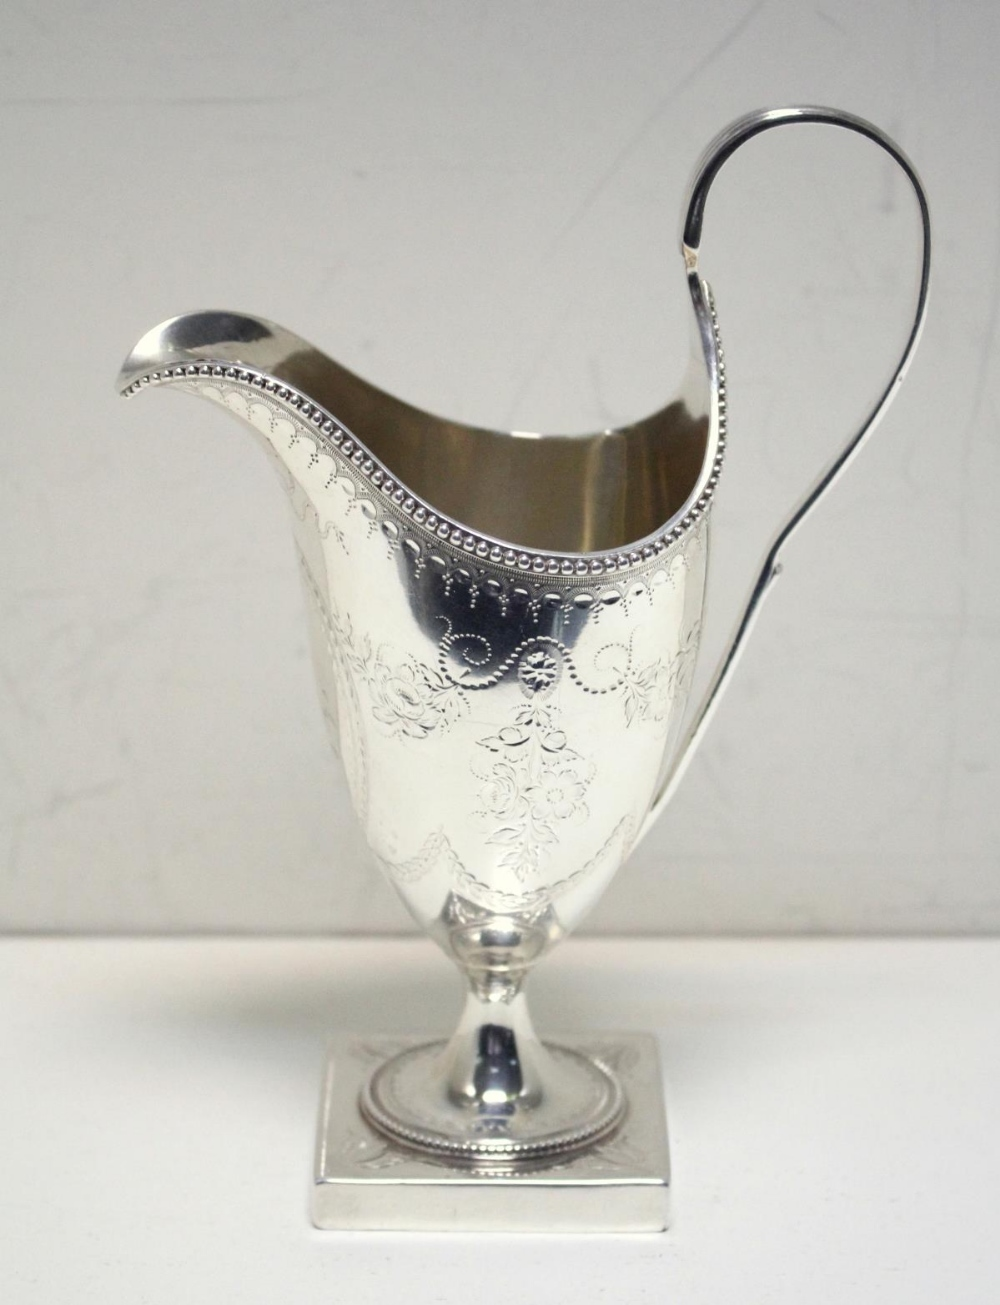 Lot 316 - A George III silver creamer, by Hester Bateman, London 1786, of helmet shape, the body engraved with